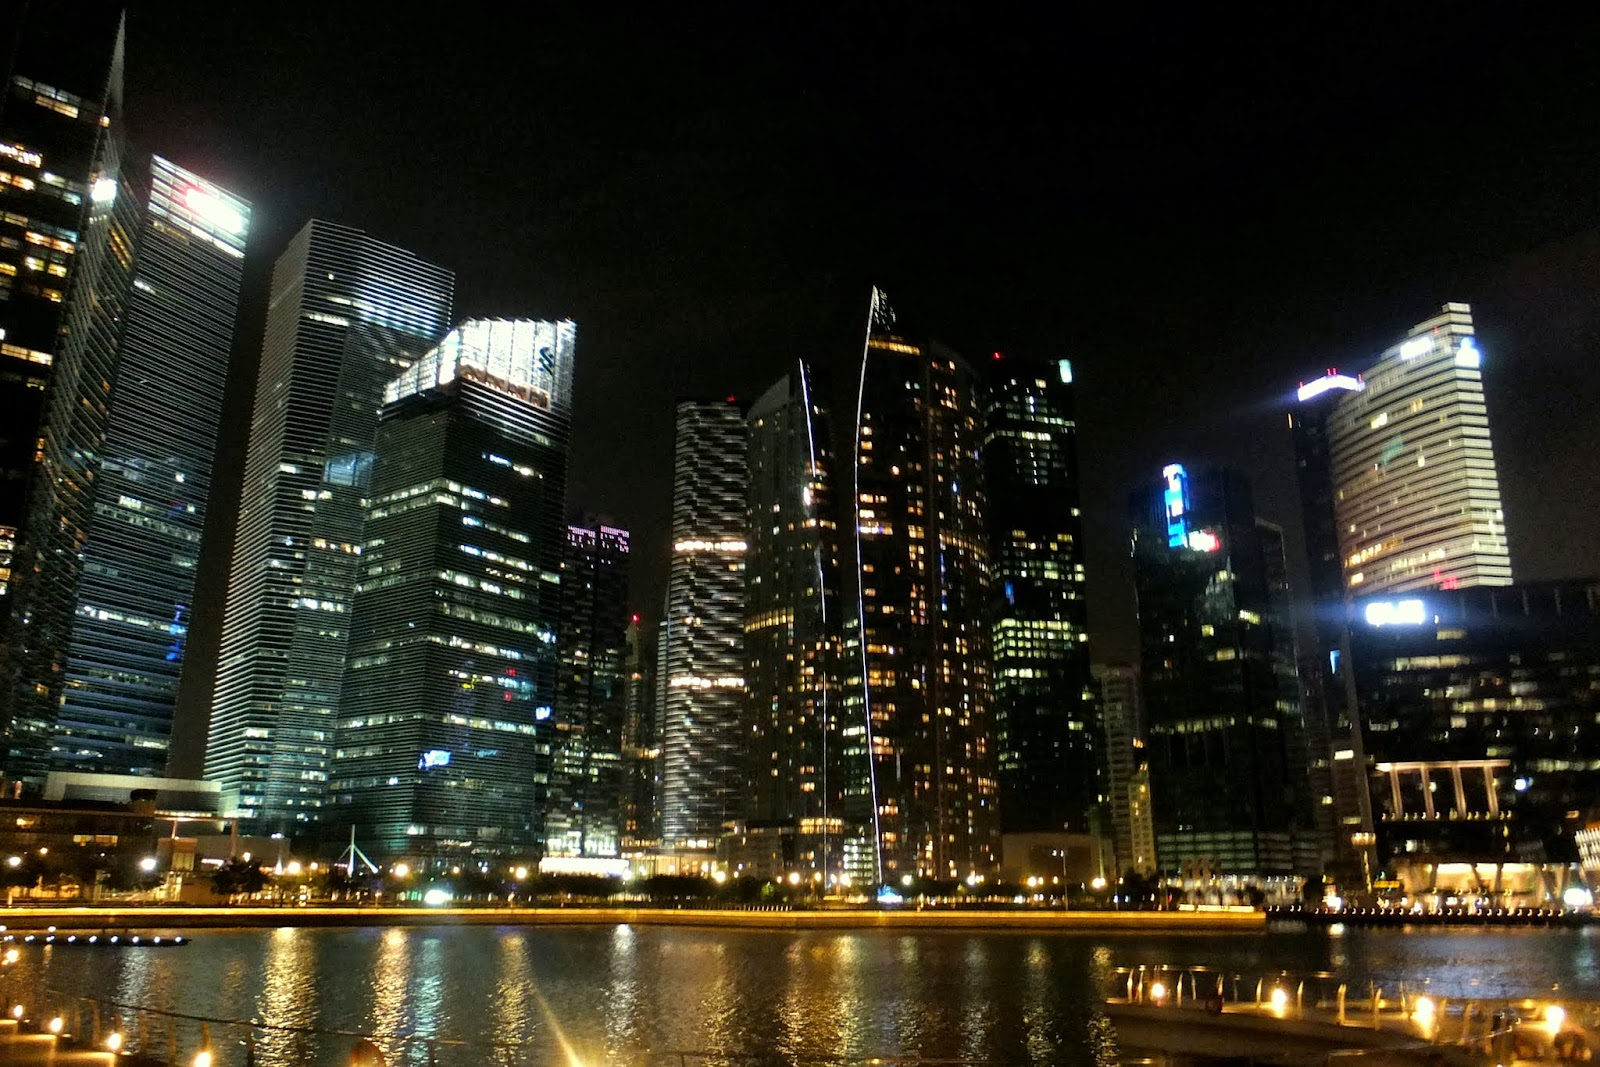 night-view-in-singapore シンガポールの夜景